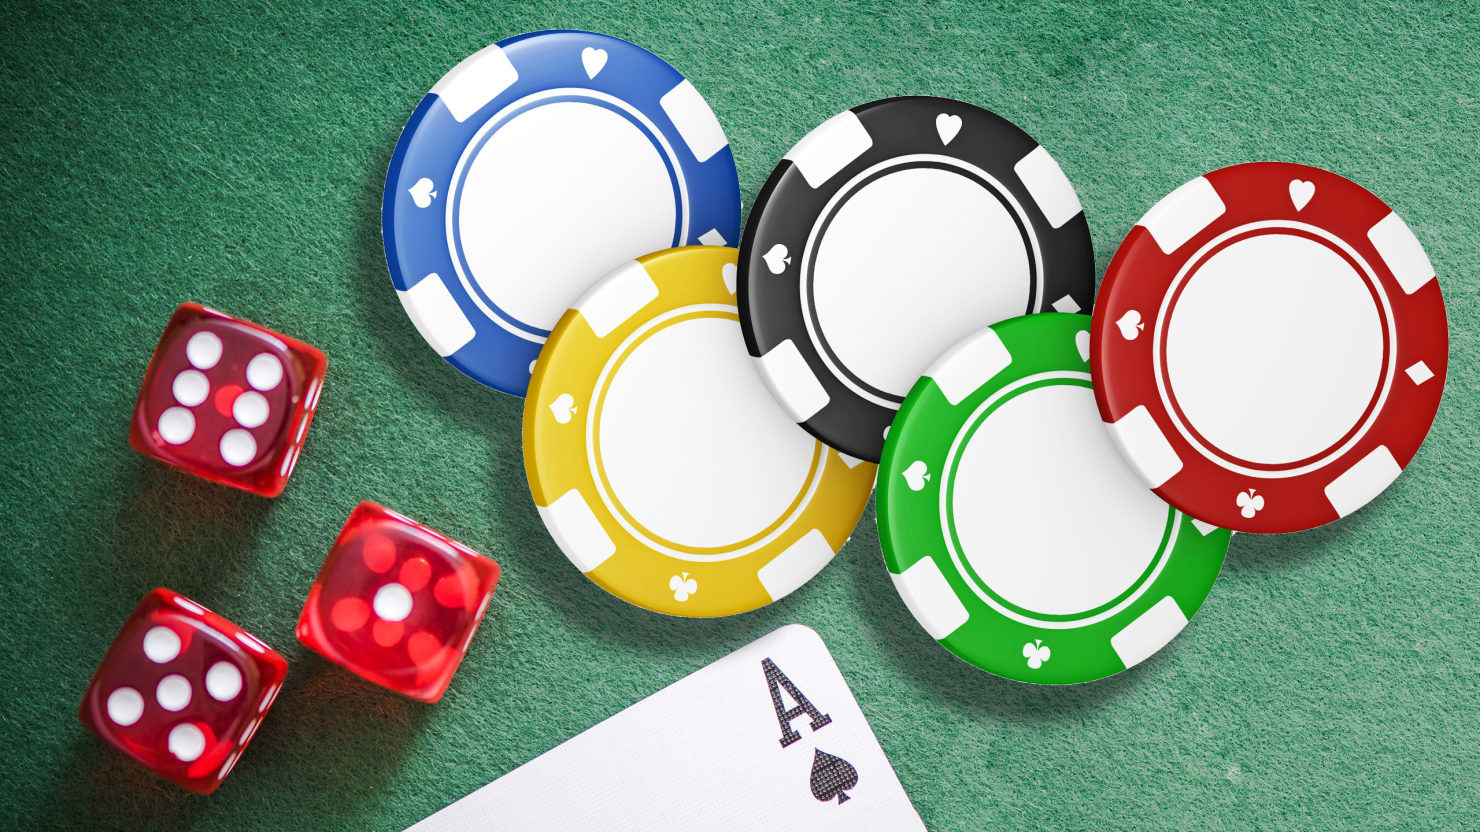 Learn About Casino and Different Casino Games